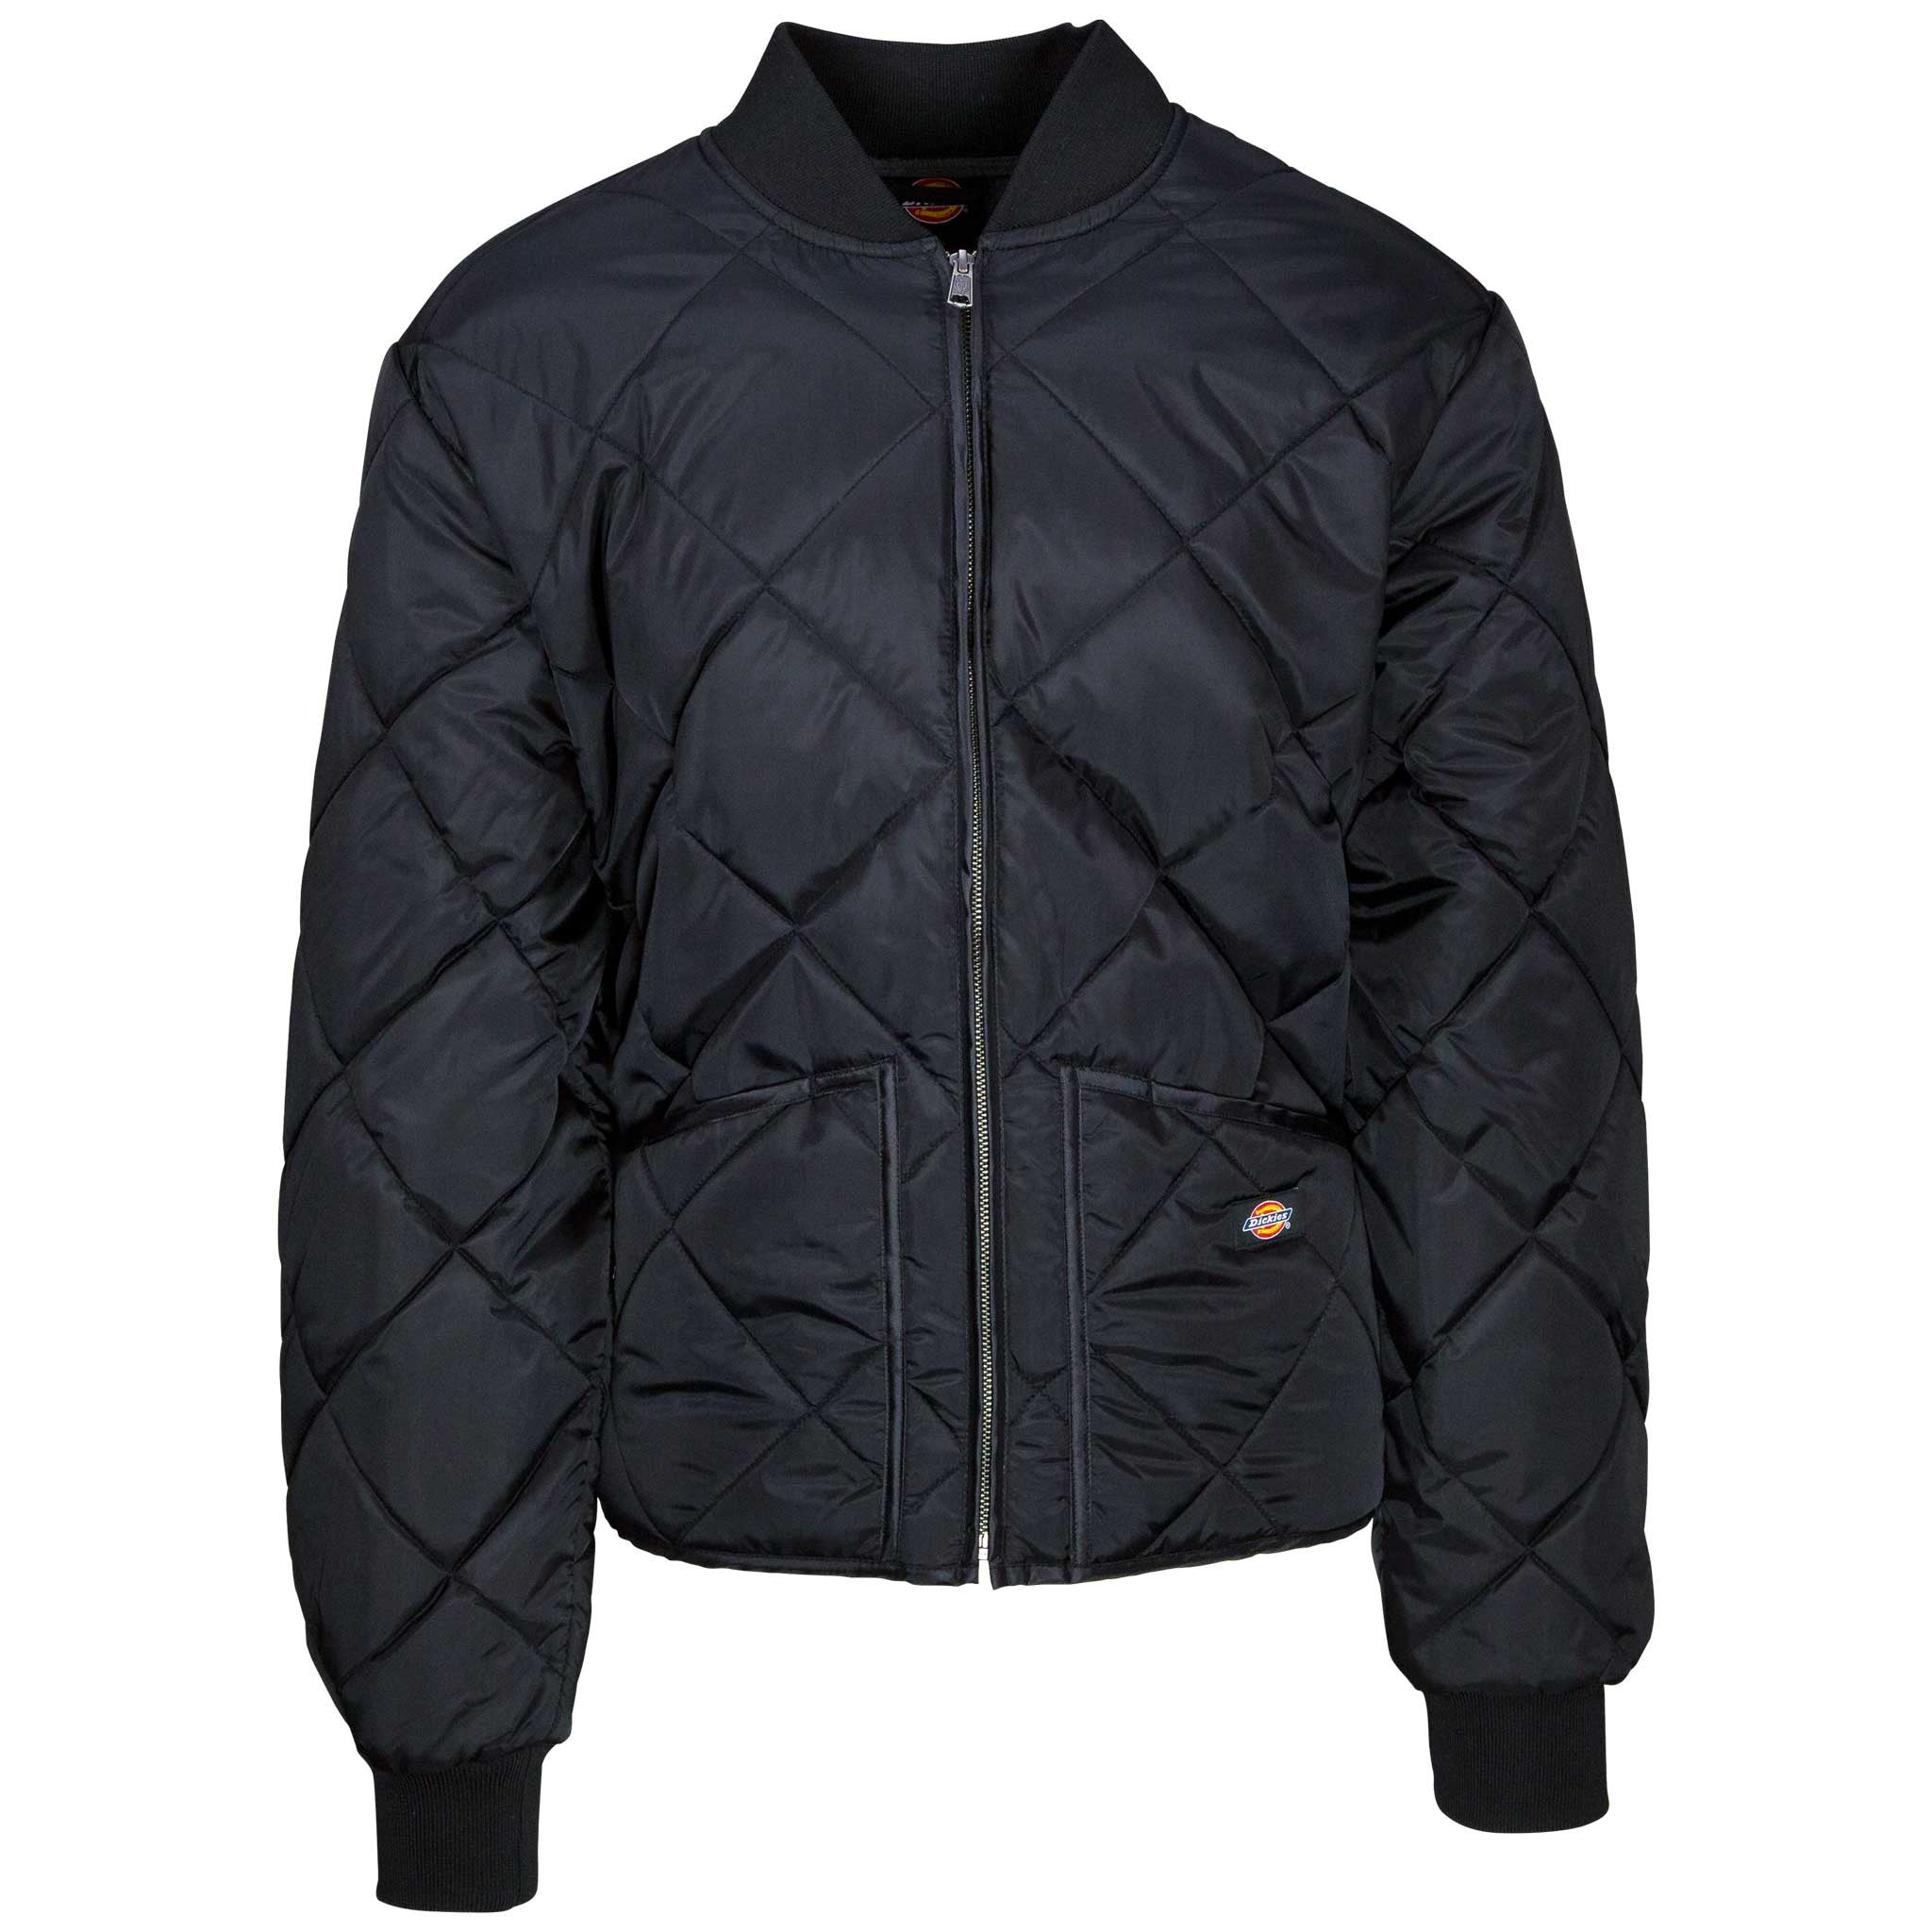 Diamond Quilted Nylon Jacket Gunthers Supply And Goods